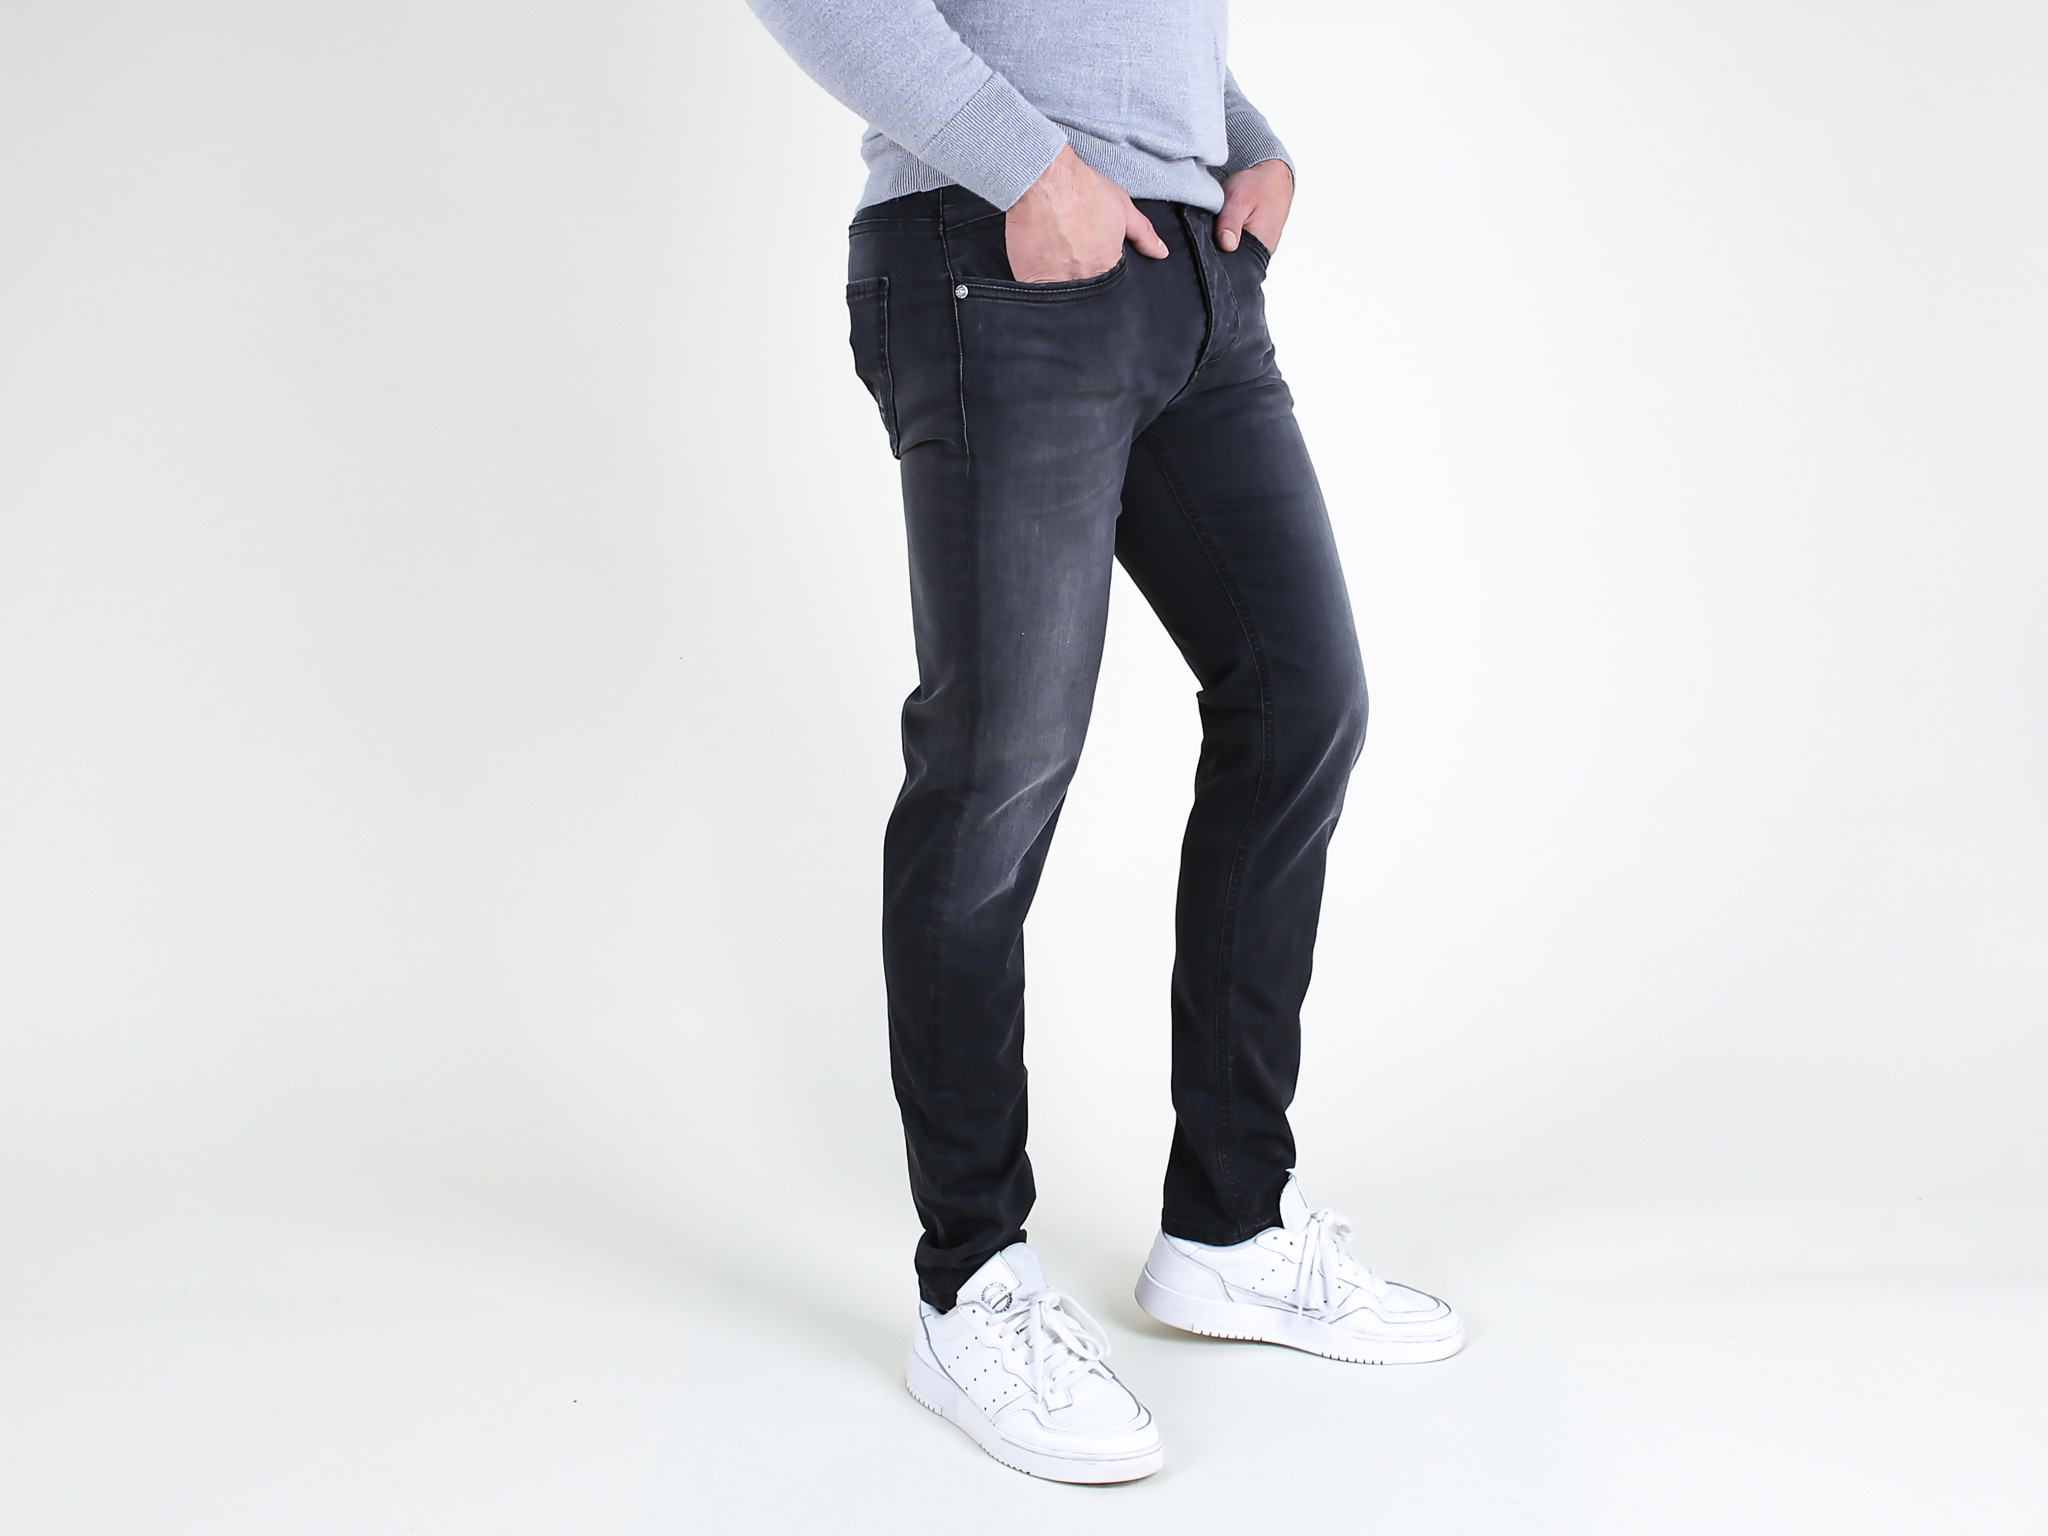 Fifty Four Fifty Four Rages J591 HM-1-ML Slim Fit Jeans Washed Black